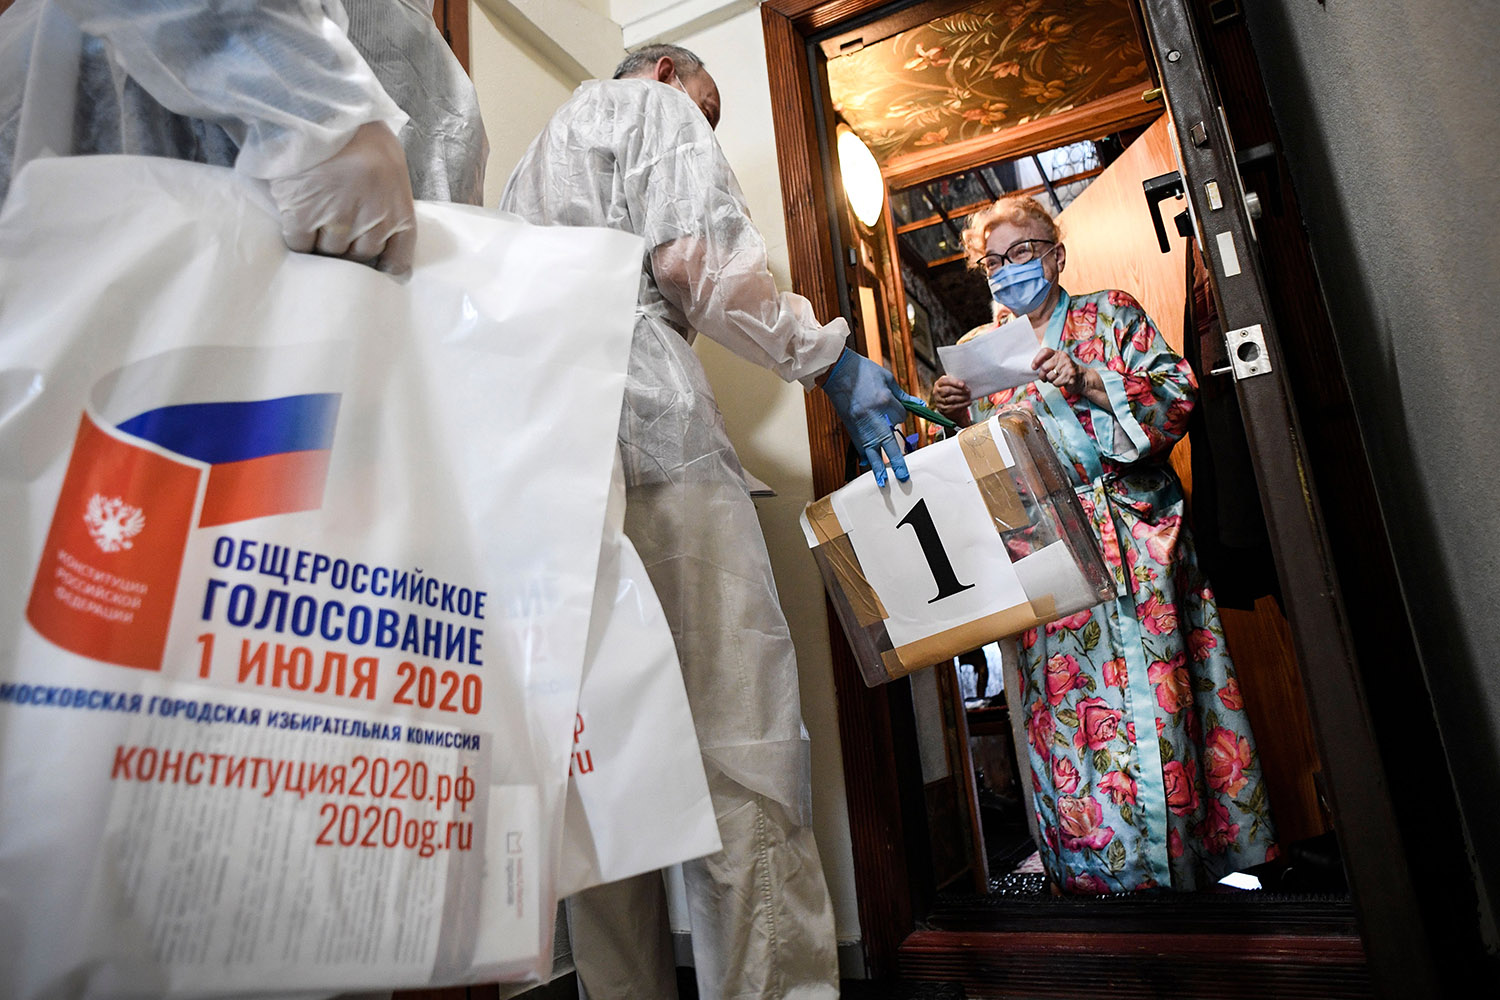 A mobile ballot box is bought to the home of a voter in Moscow on July 1, part of an effort to help Russians vote on constitutional reforms amid the coronavirus pandemic. ALEXANDER NEMENOV/AFP via Getty Images